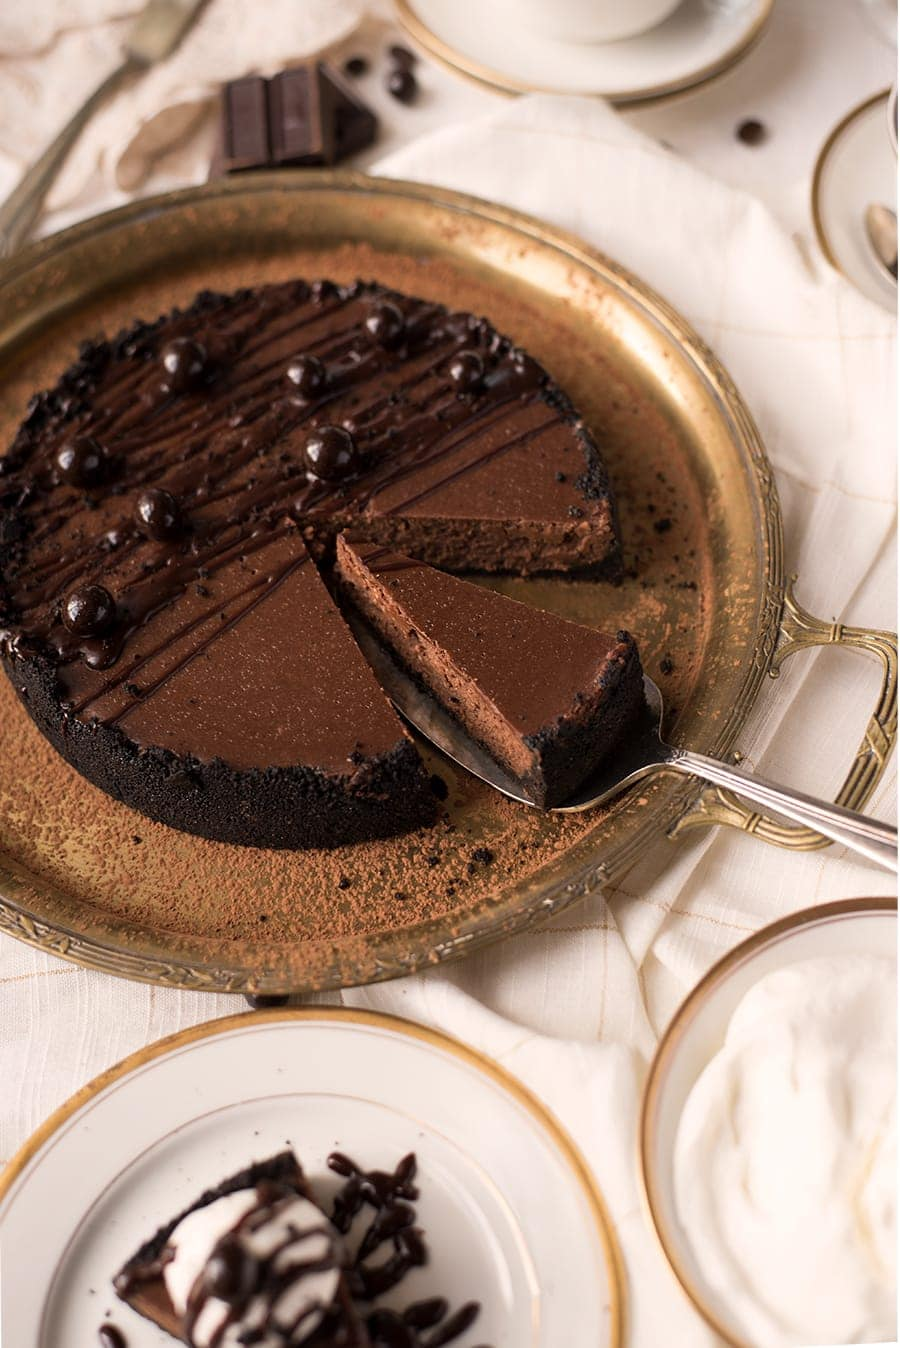 Instant Pot Chocolate Espresso Cheesecake 8868 Web - Instant Pot Chocolate Cheesecake with Espresso Beans and Oreo Crust